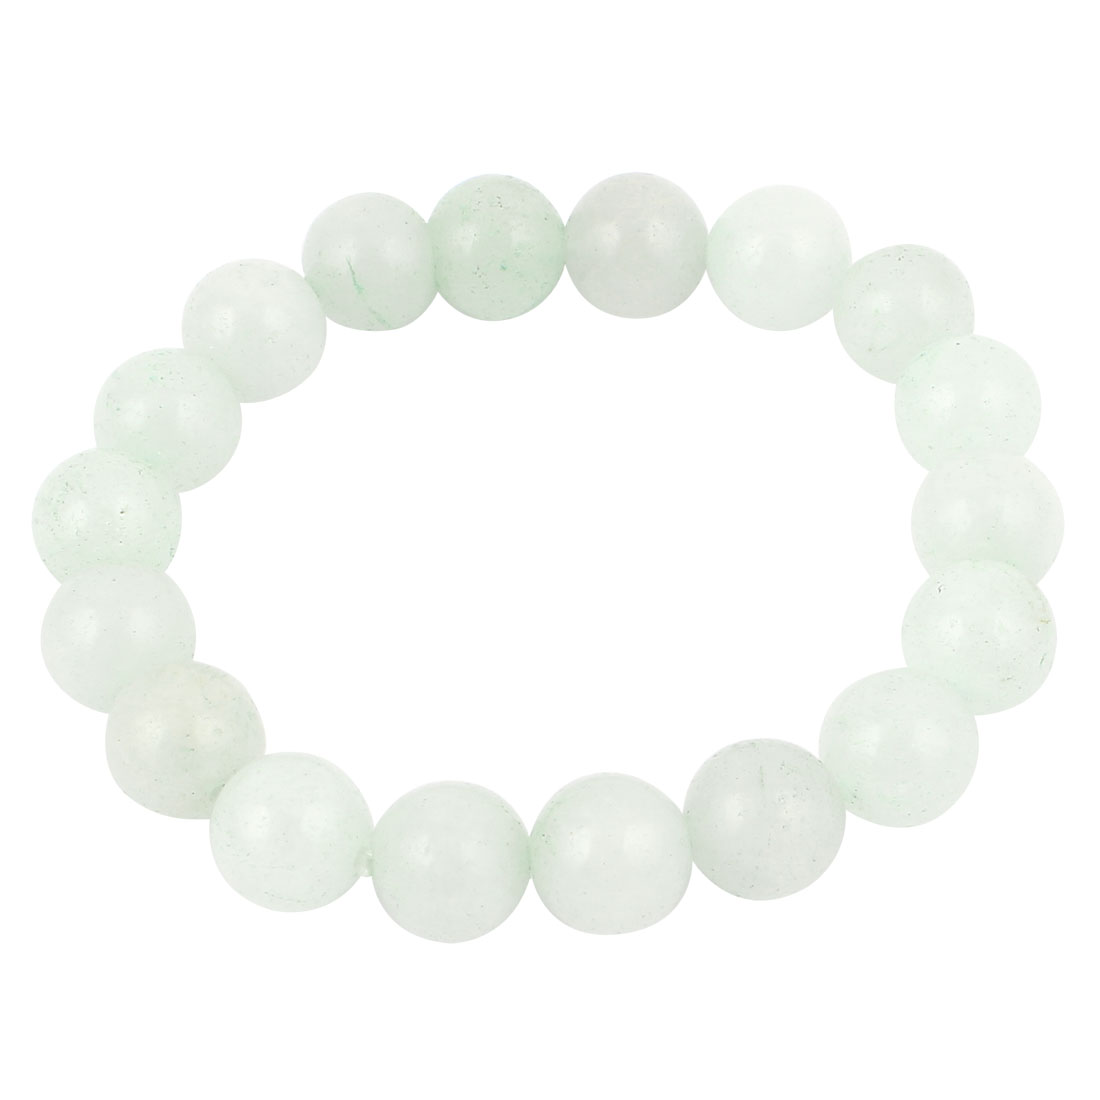 Elasticated 10mm Beaded Stretch Bracelet Jewellery Wrist Ornament White